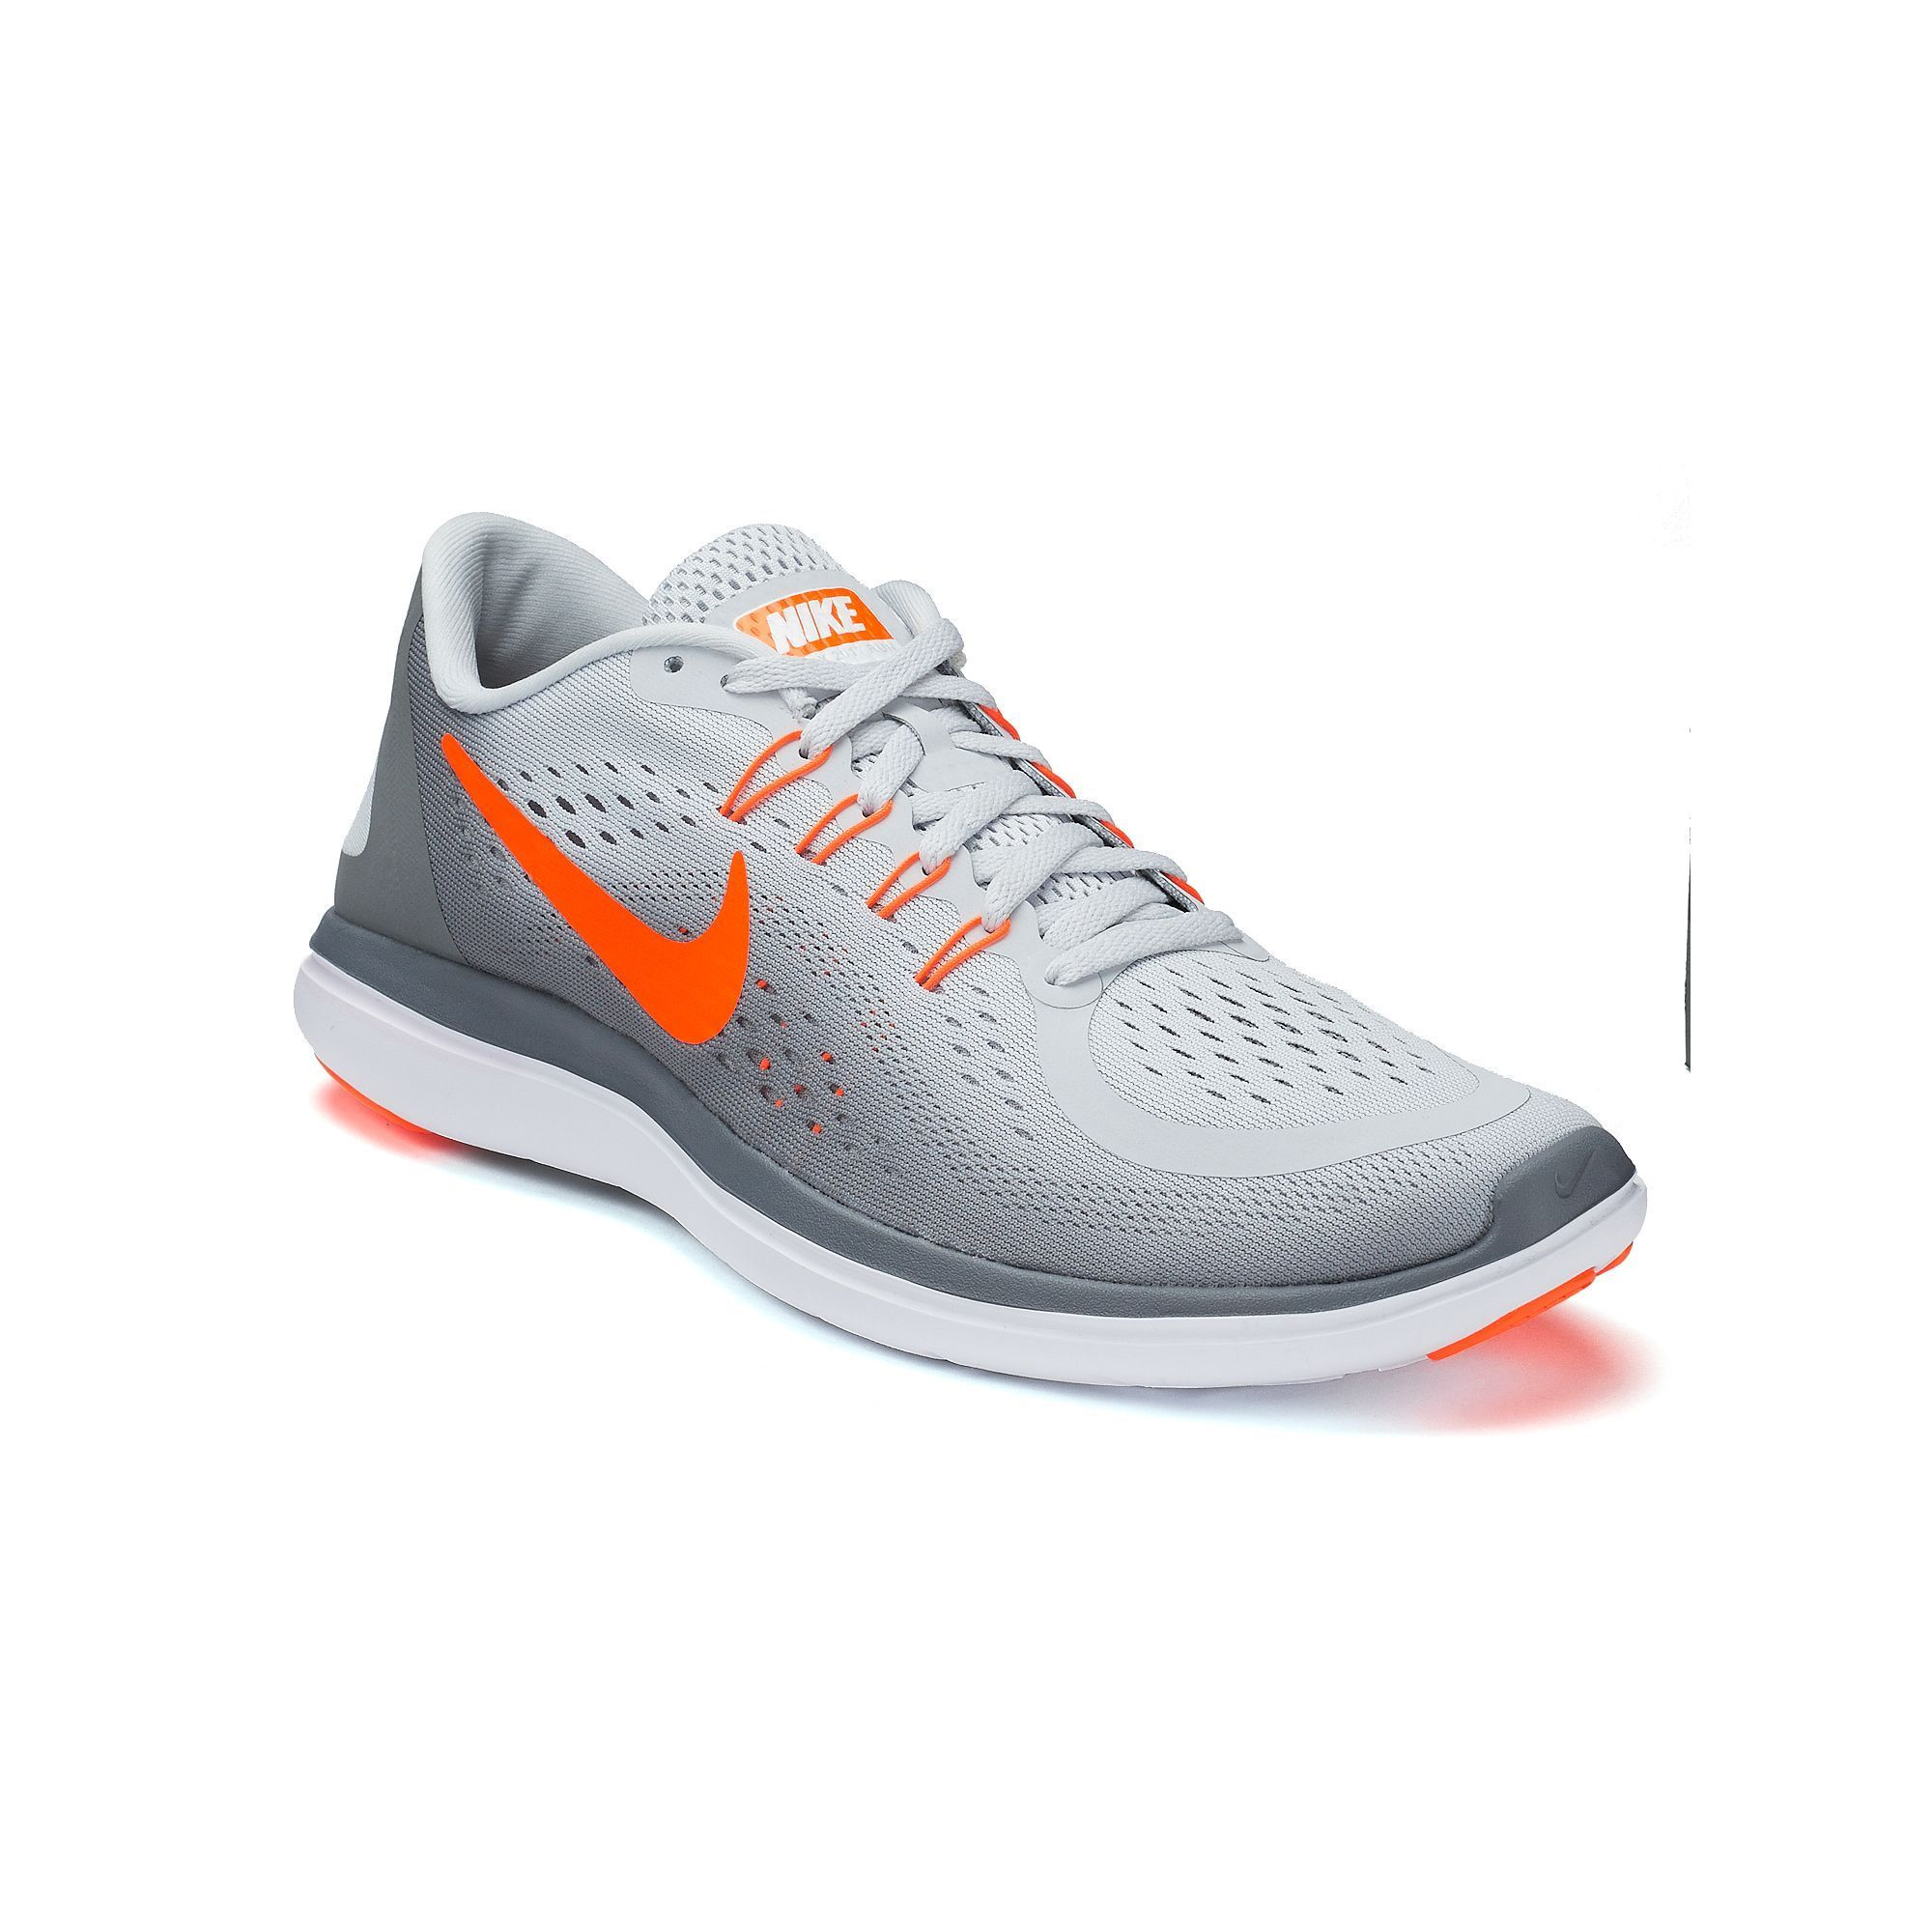 948ed8e31b11 Nike Flex 2017 RN Men s Running Shoes